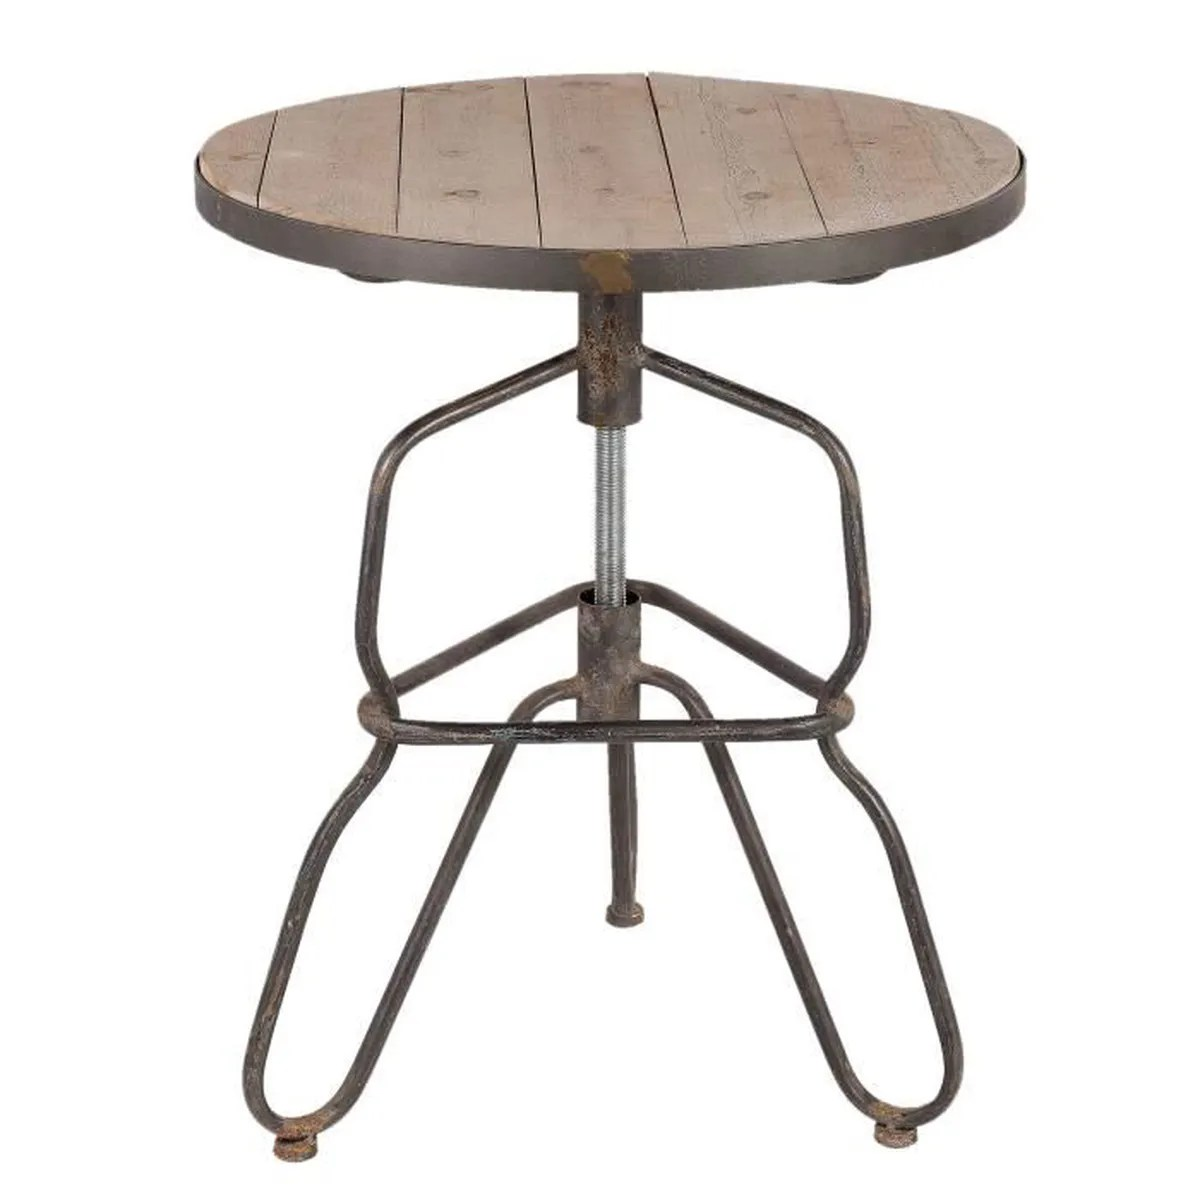 Table Bistrot Fer Forgé Table Bistrot Industrielle Achat Vente Table D Appoint Table